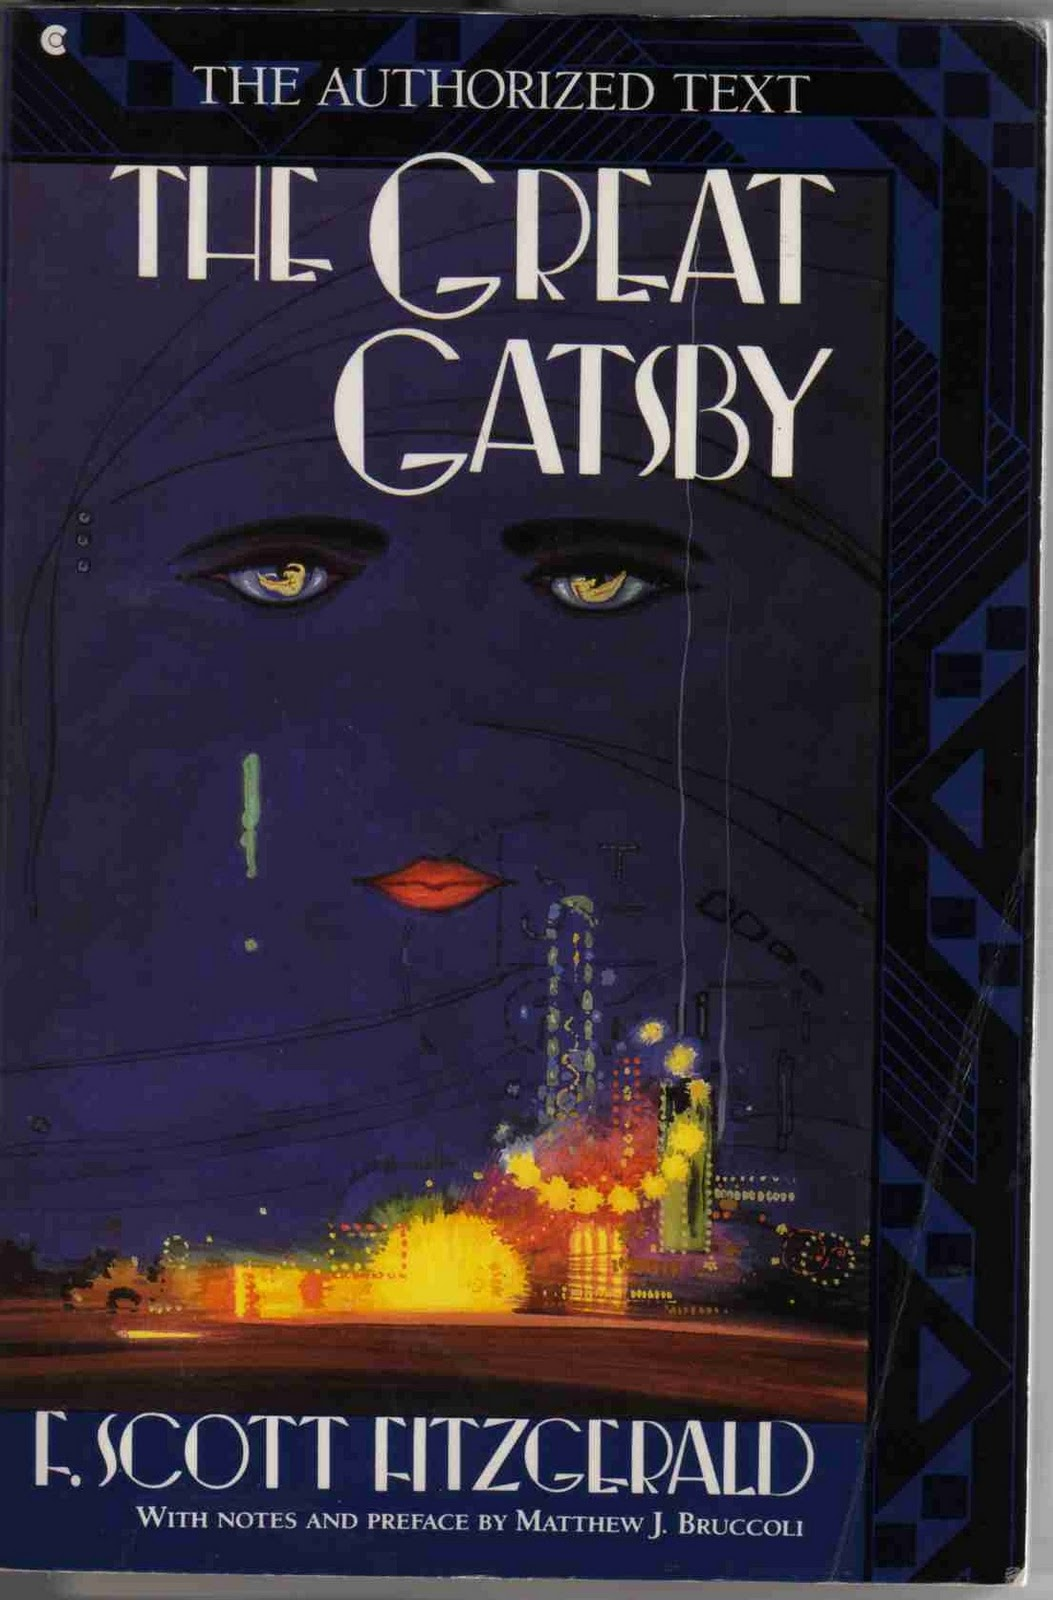 the great gatsby literary analysis essay d155 literary analysis essay of the great gatsby